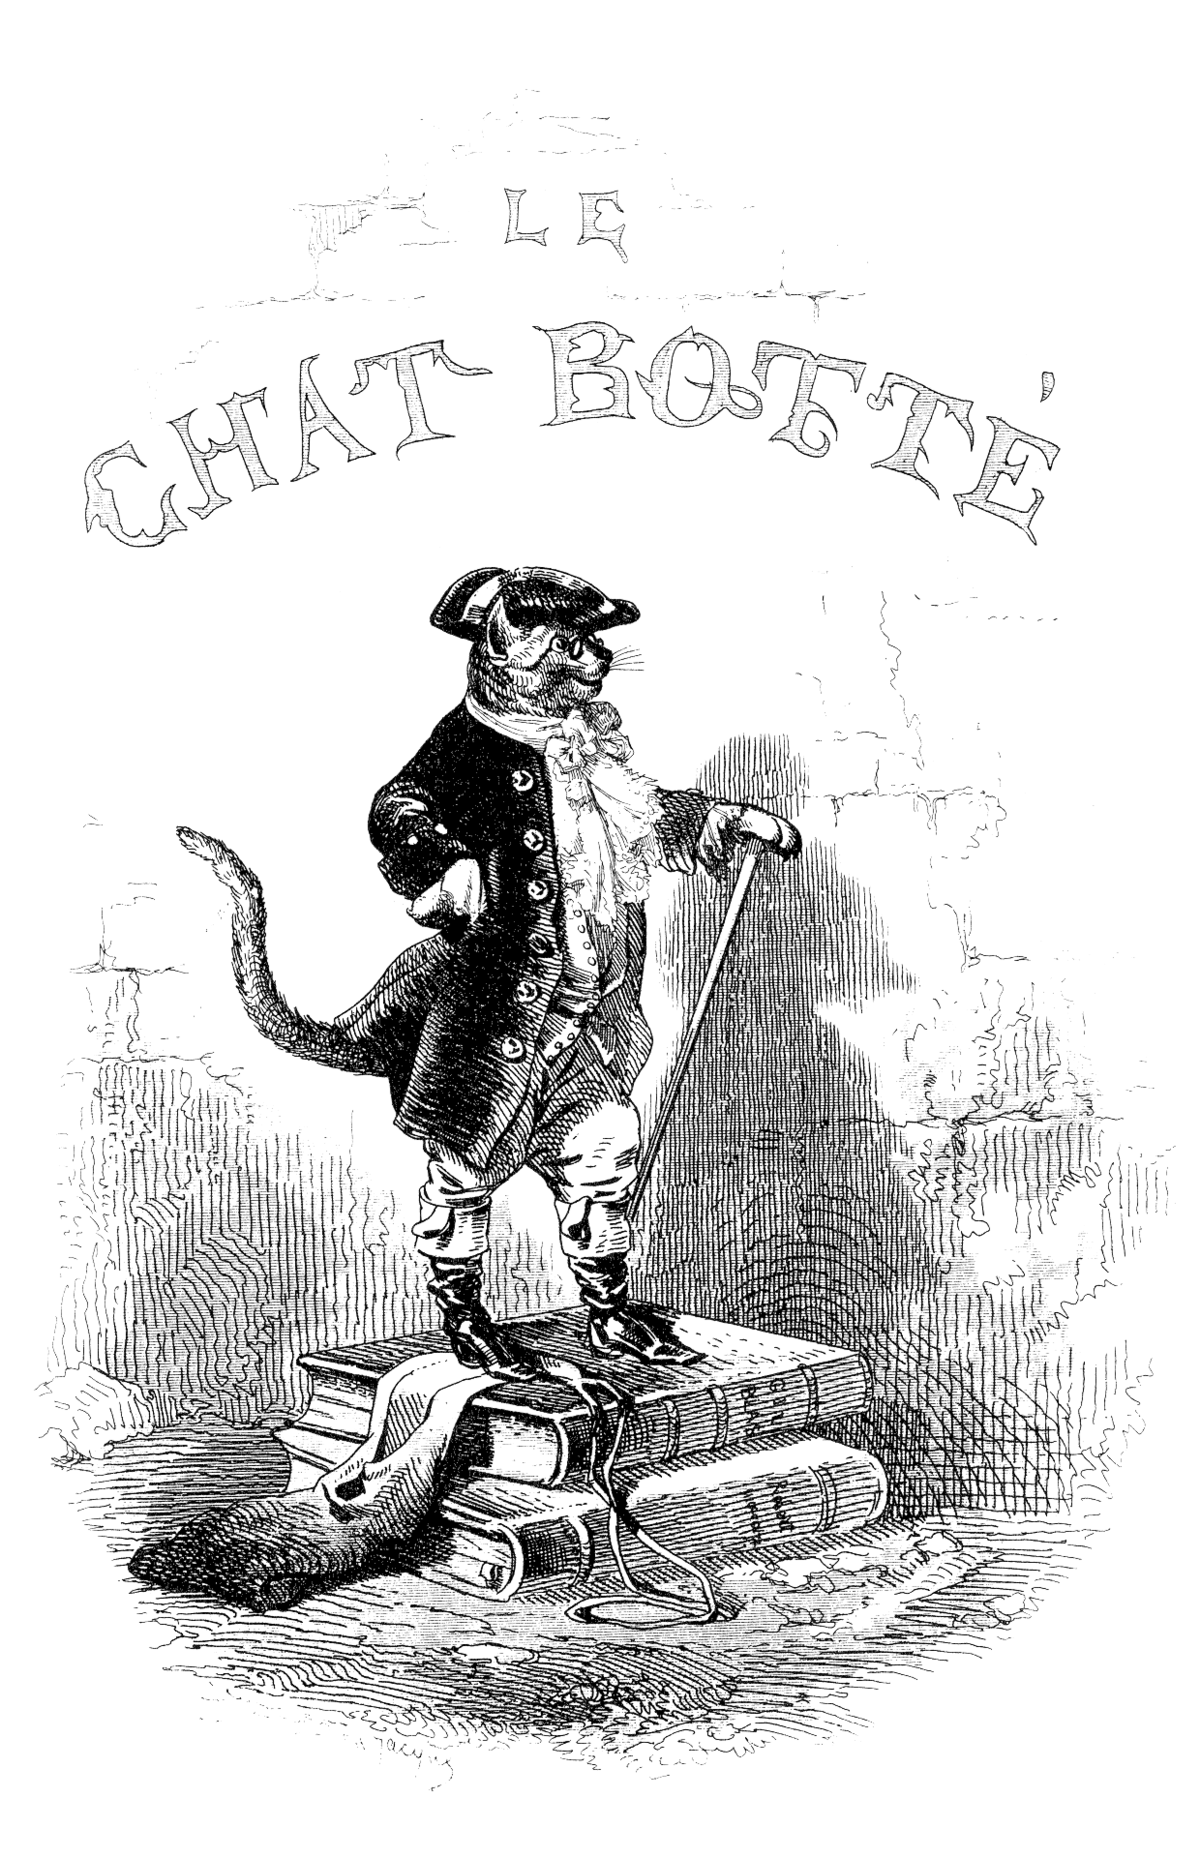 puss in boots - wikipedia